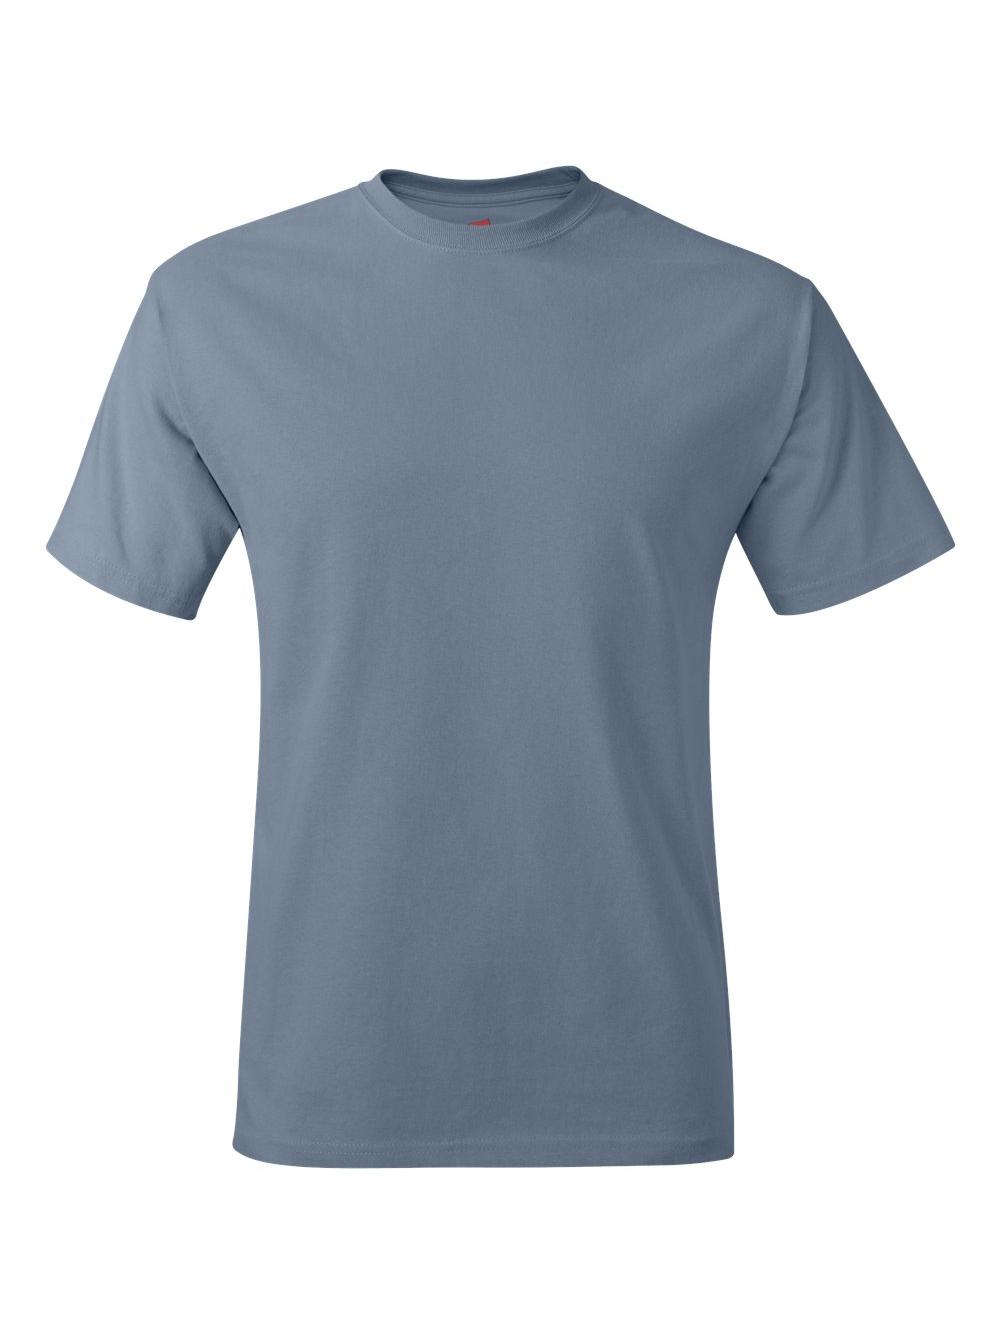 Library Is Free The Hanes Tagless Tee T-Shirt